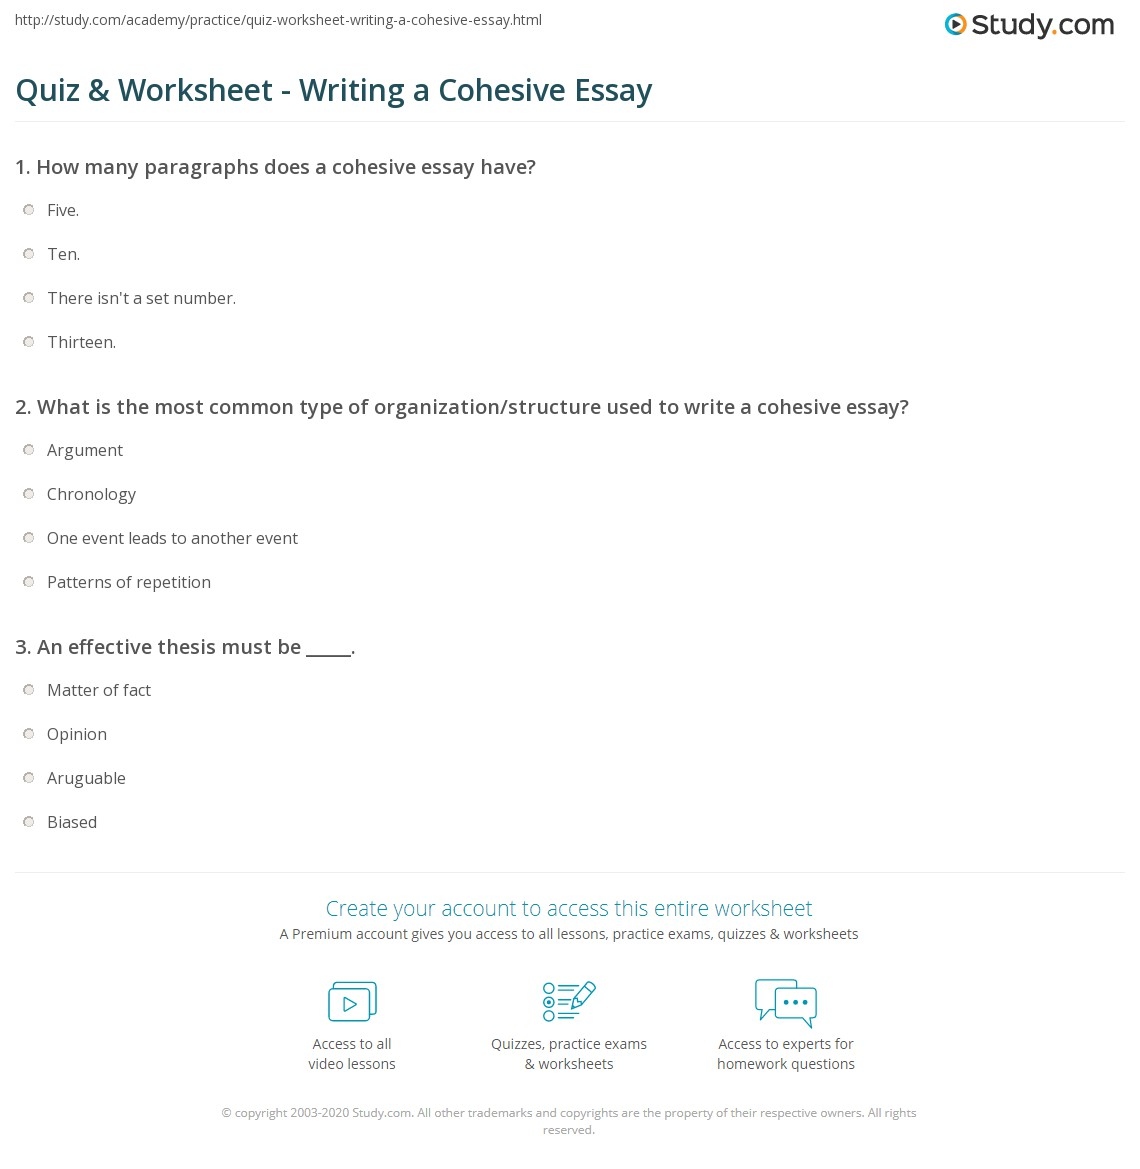 Quiz & Worksheet - Writing a Cohesive Essay | Study.com